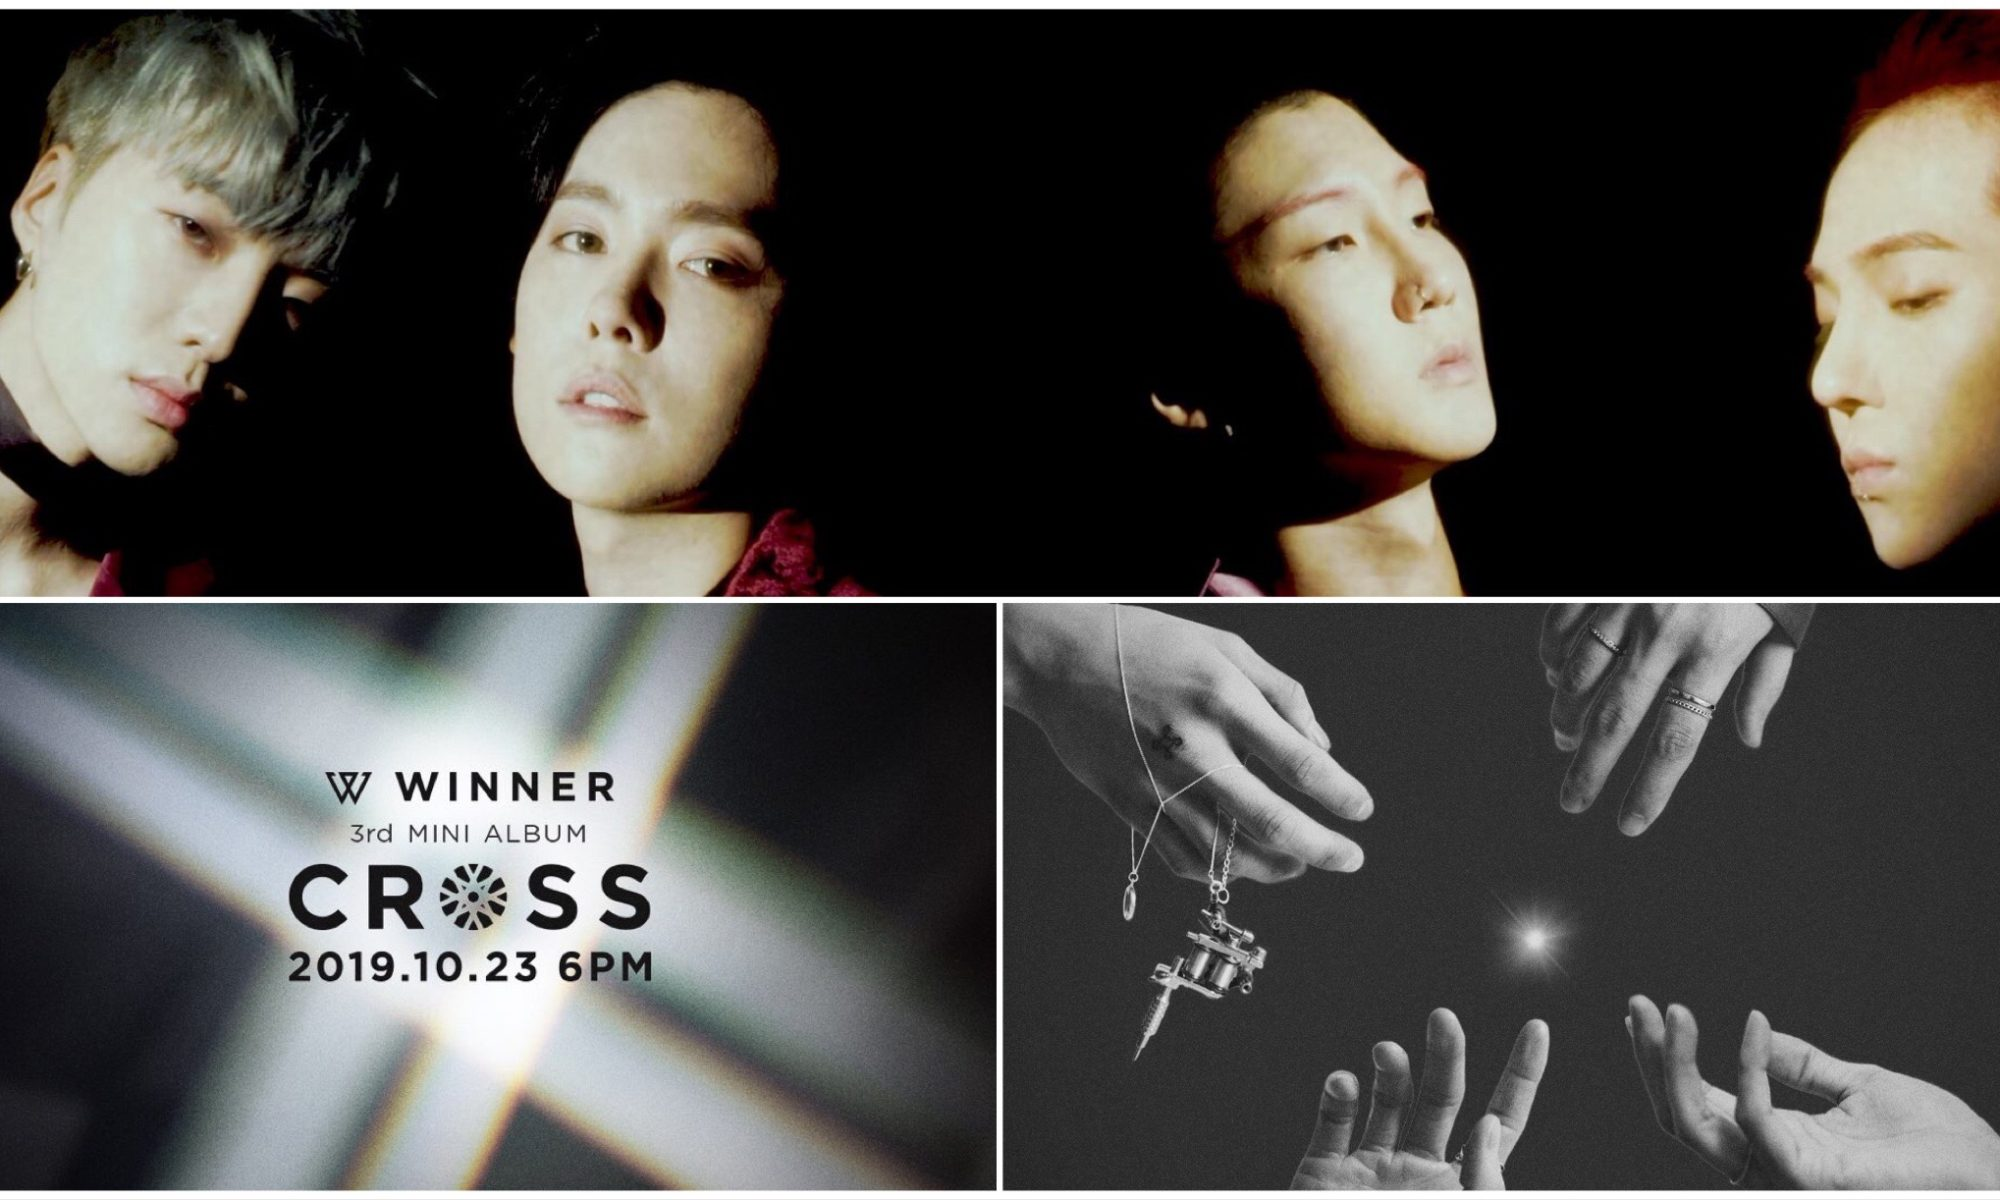 Winner: Cross